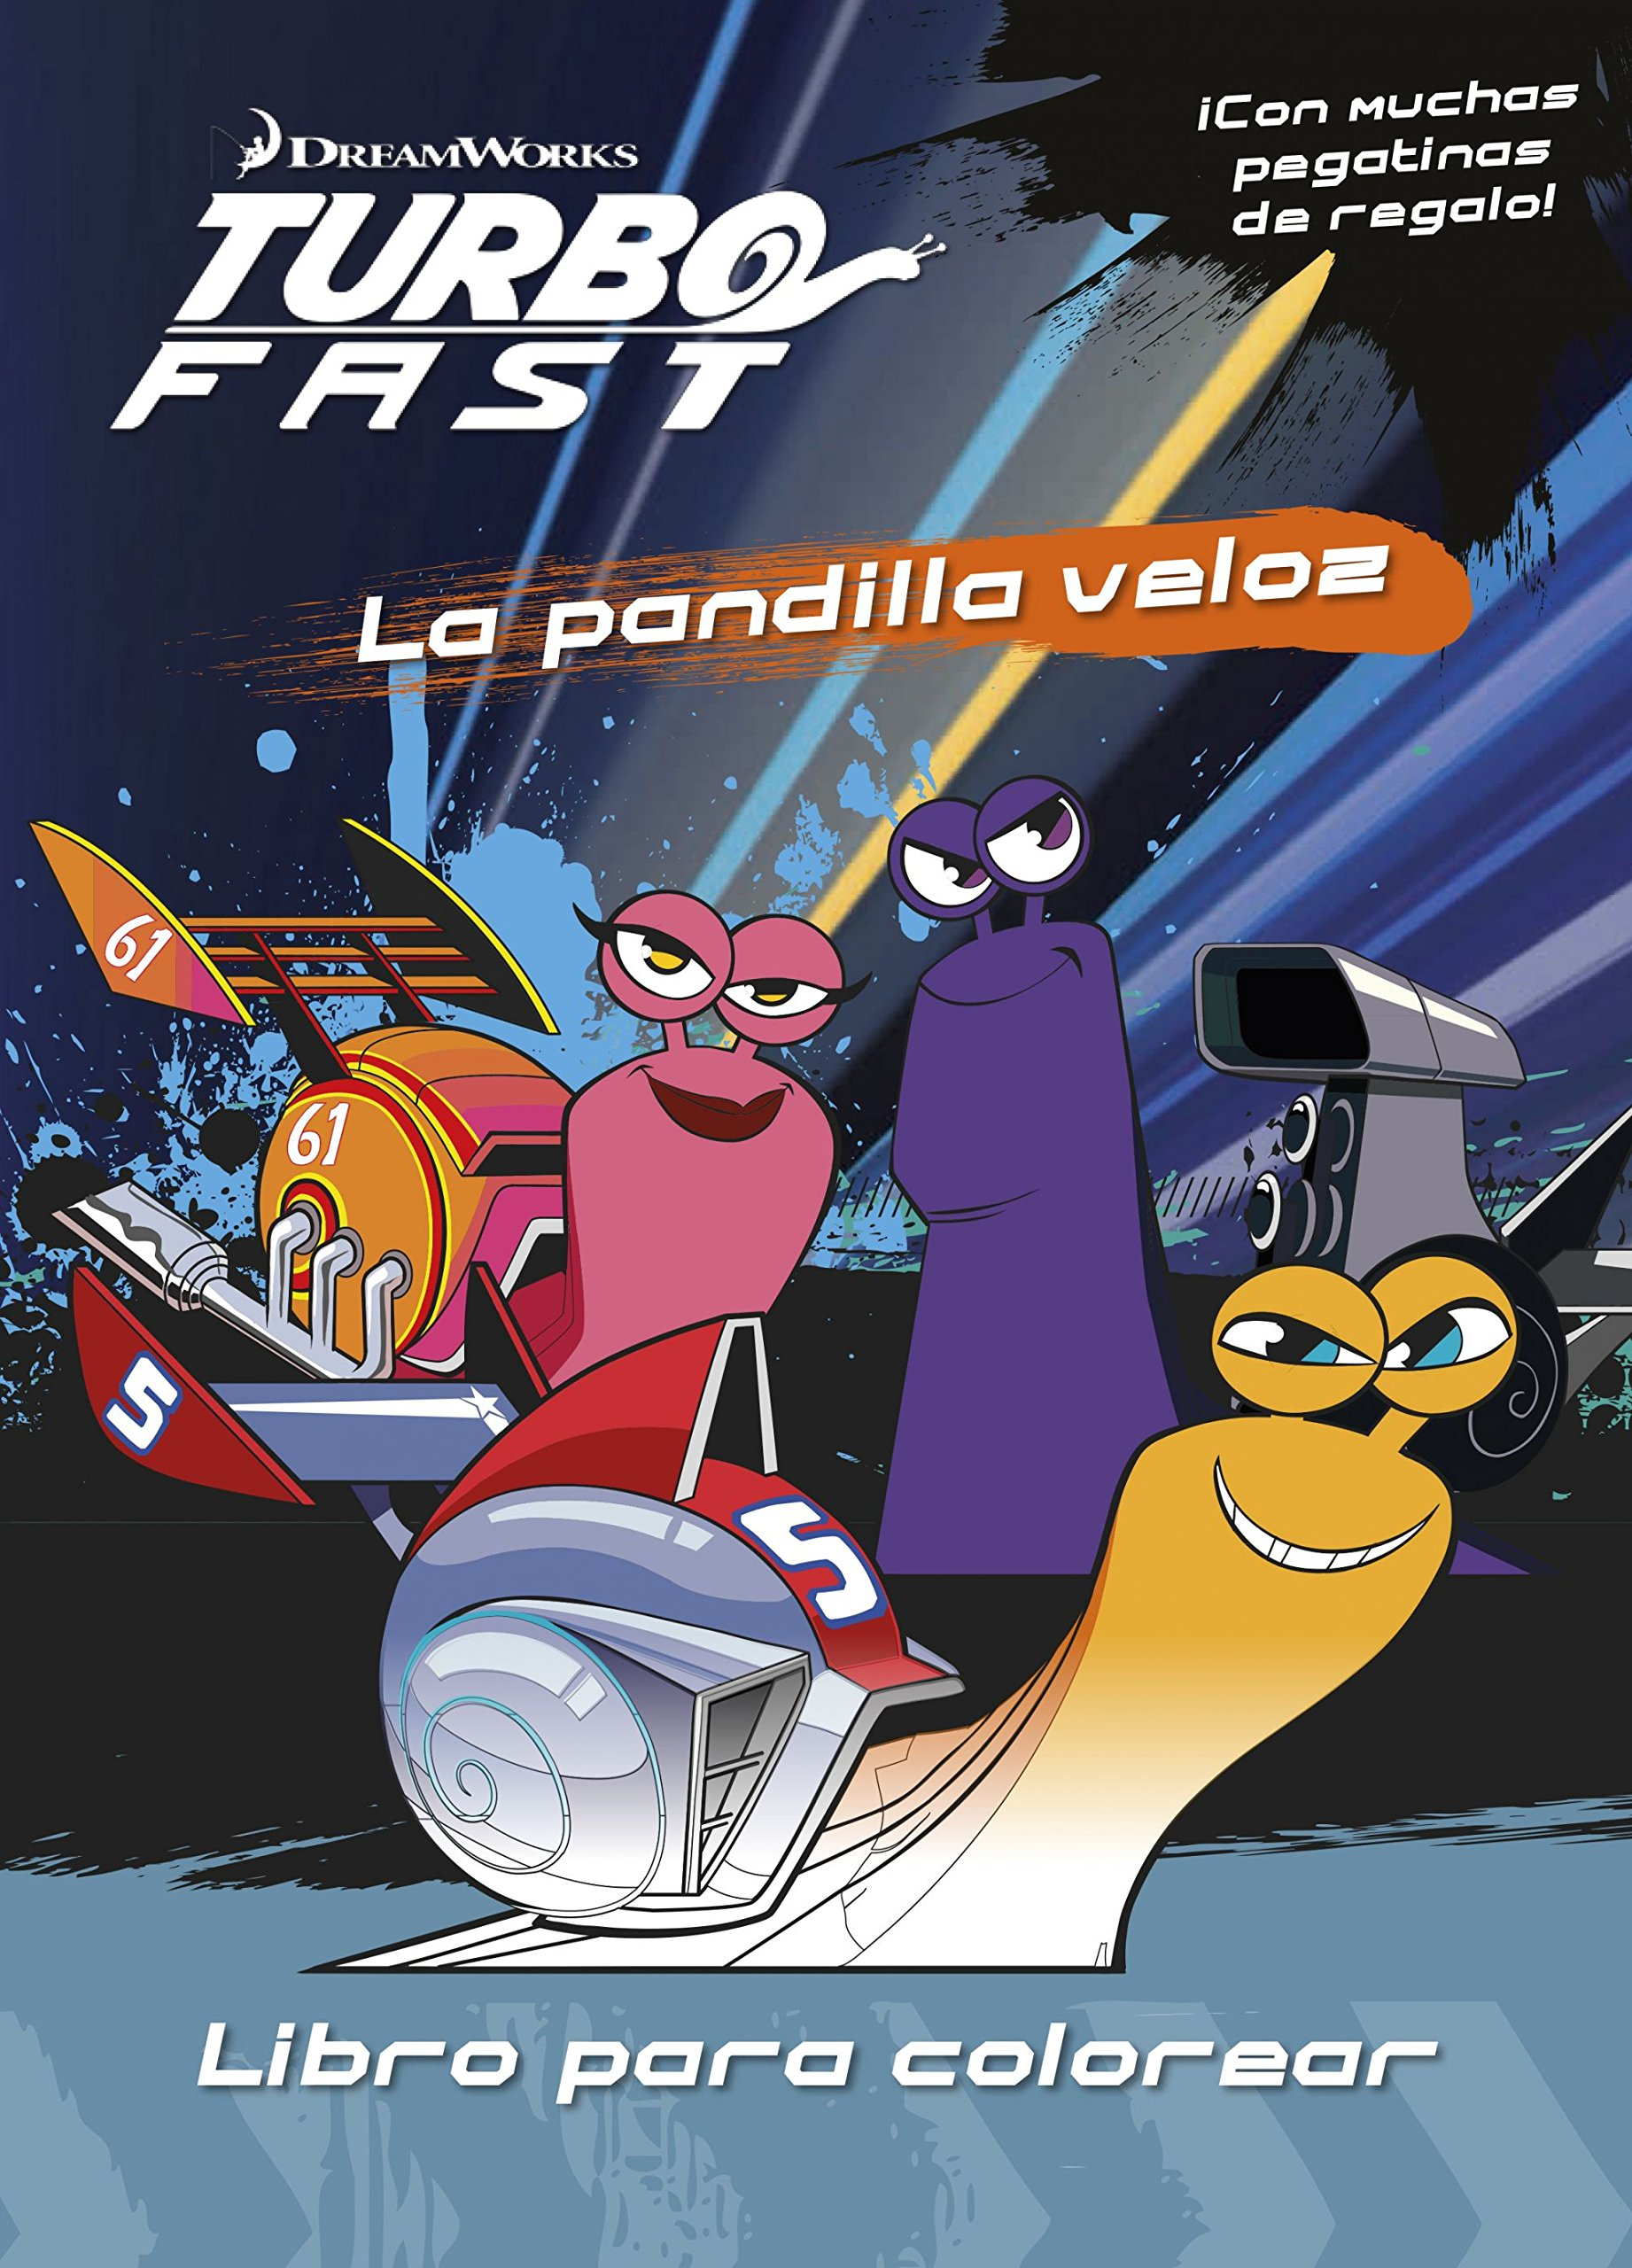 Turbo Fast. Libro para colorear: La pandilla veloz: Amazon.es: Dreamworks: Libros